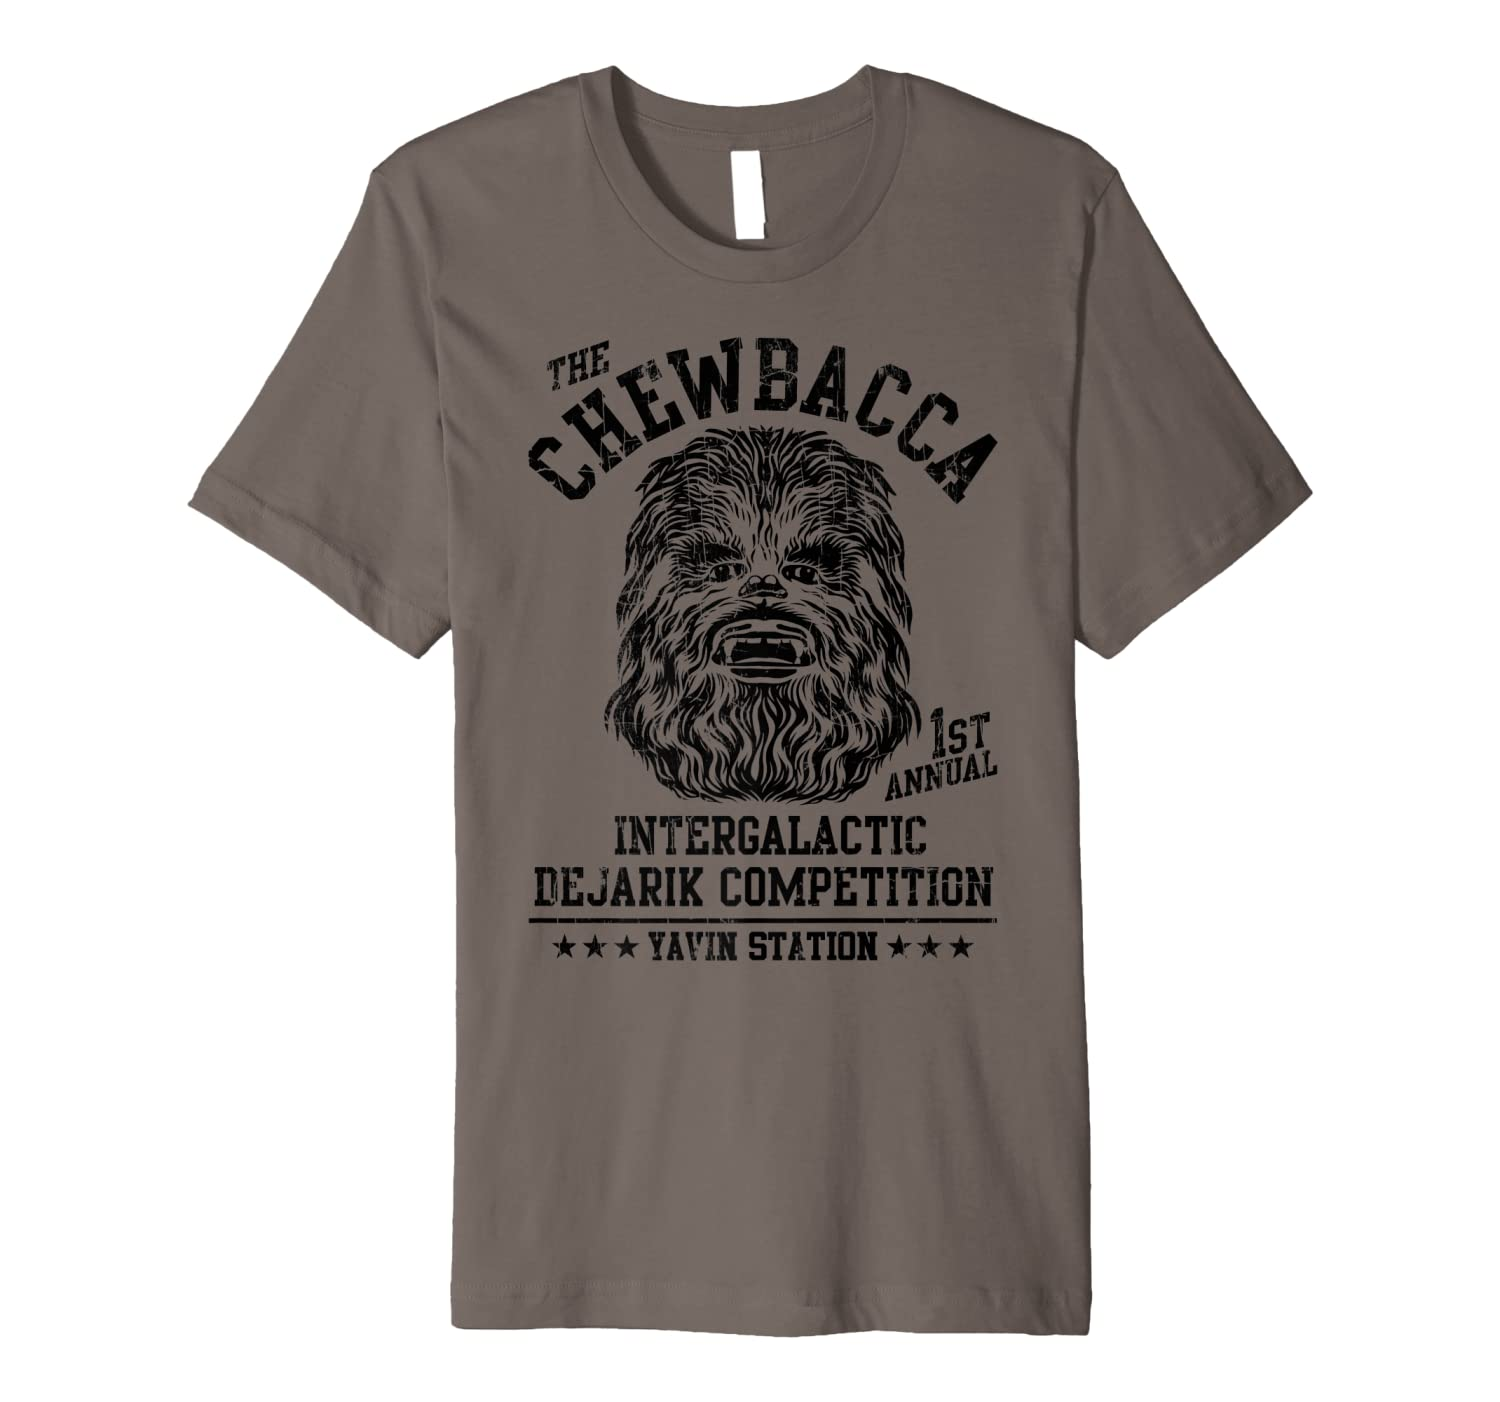 S Chewbacca Intergalactic Dejarik Competition Shirts